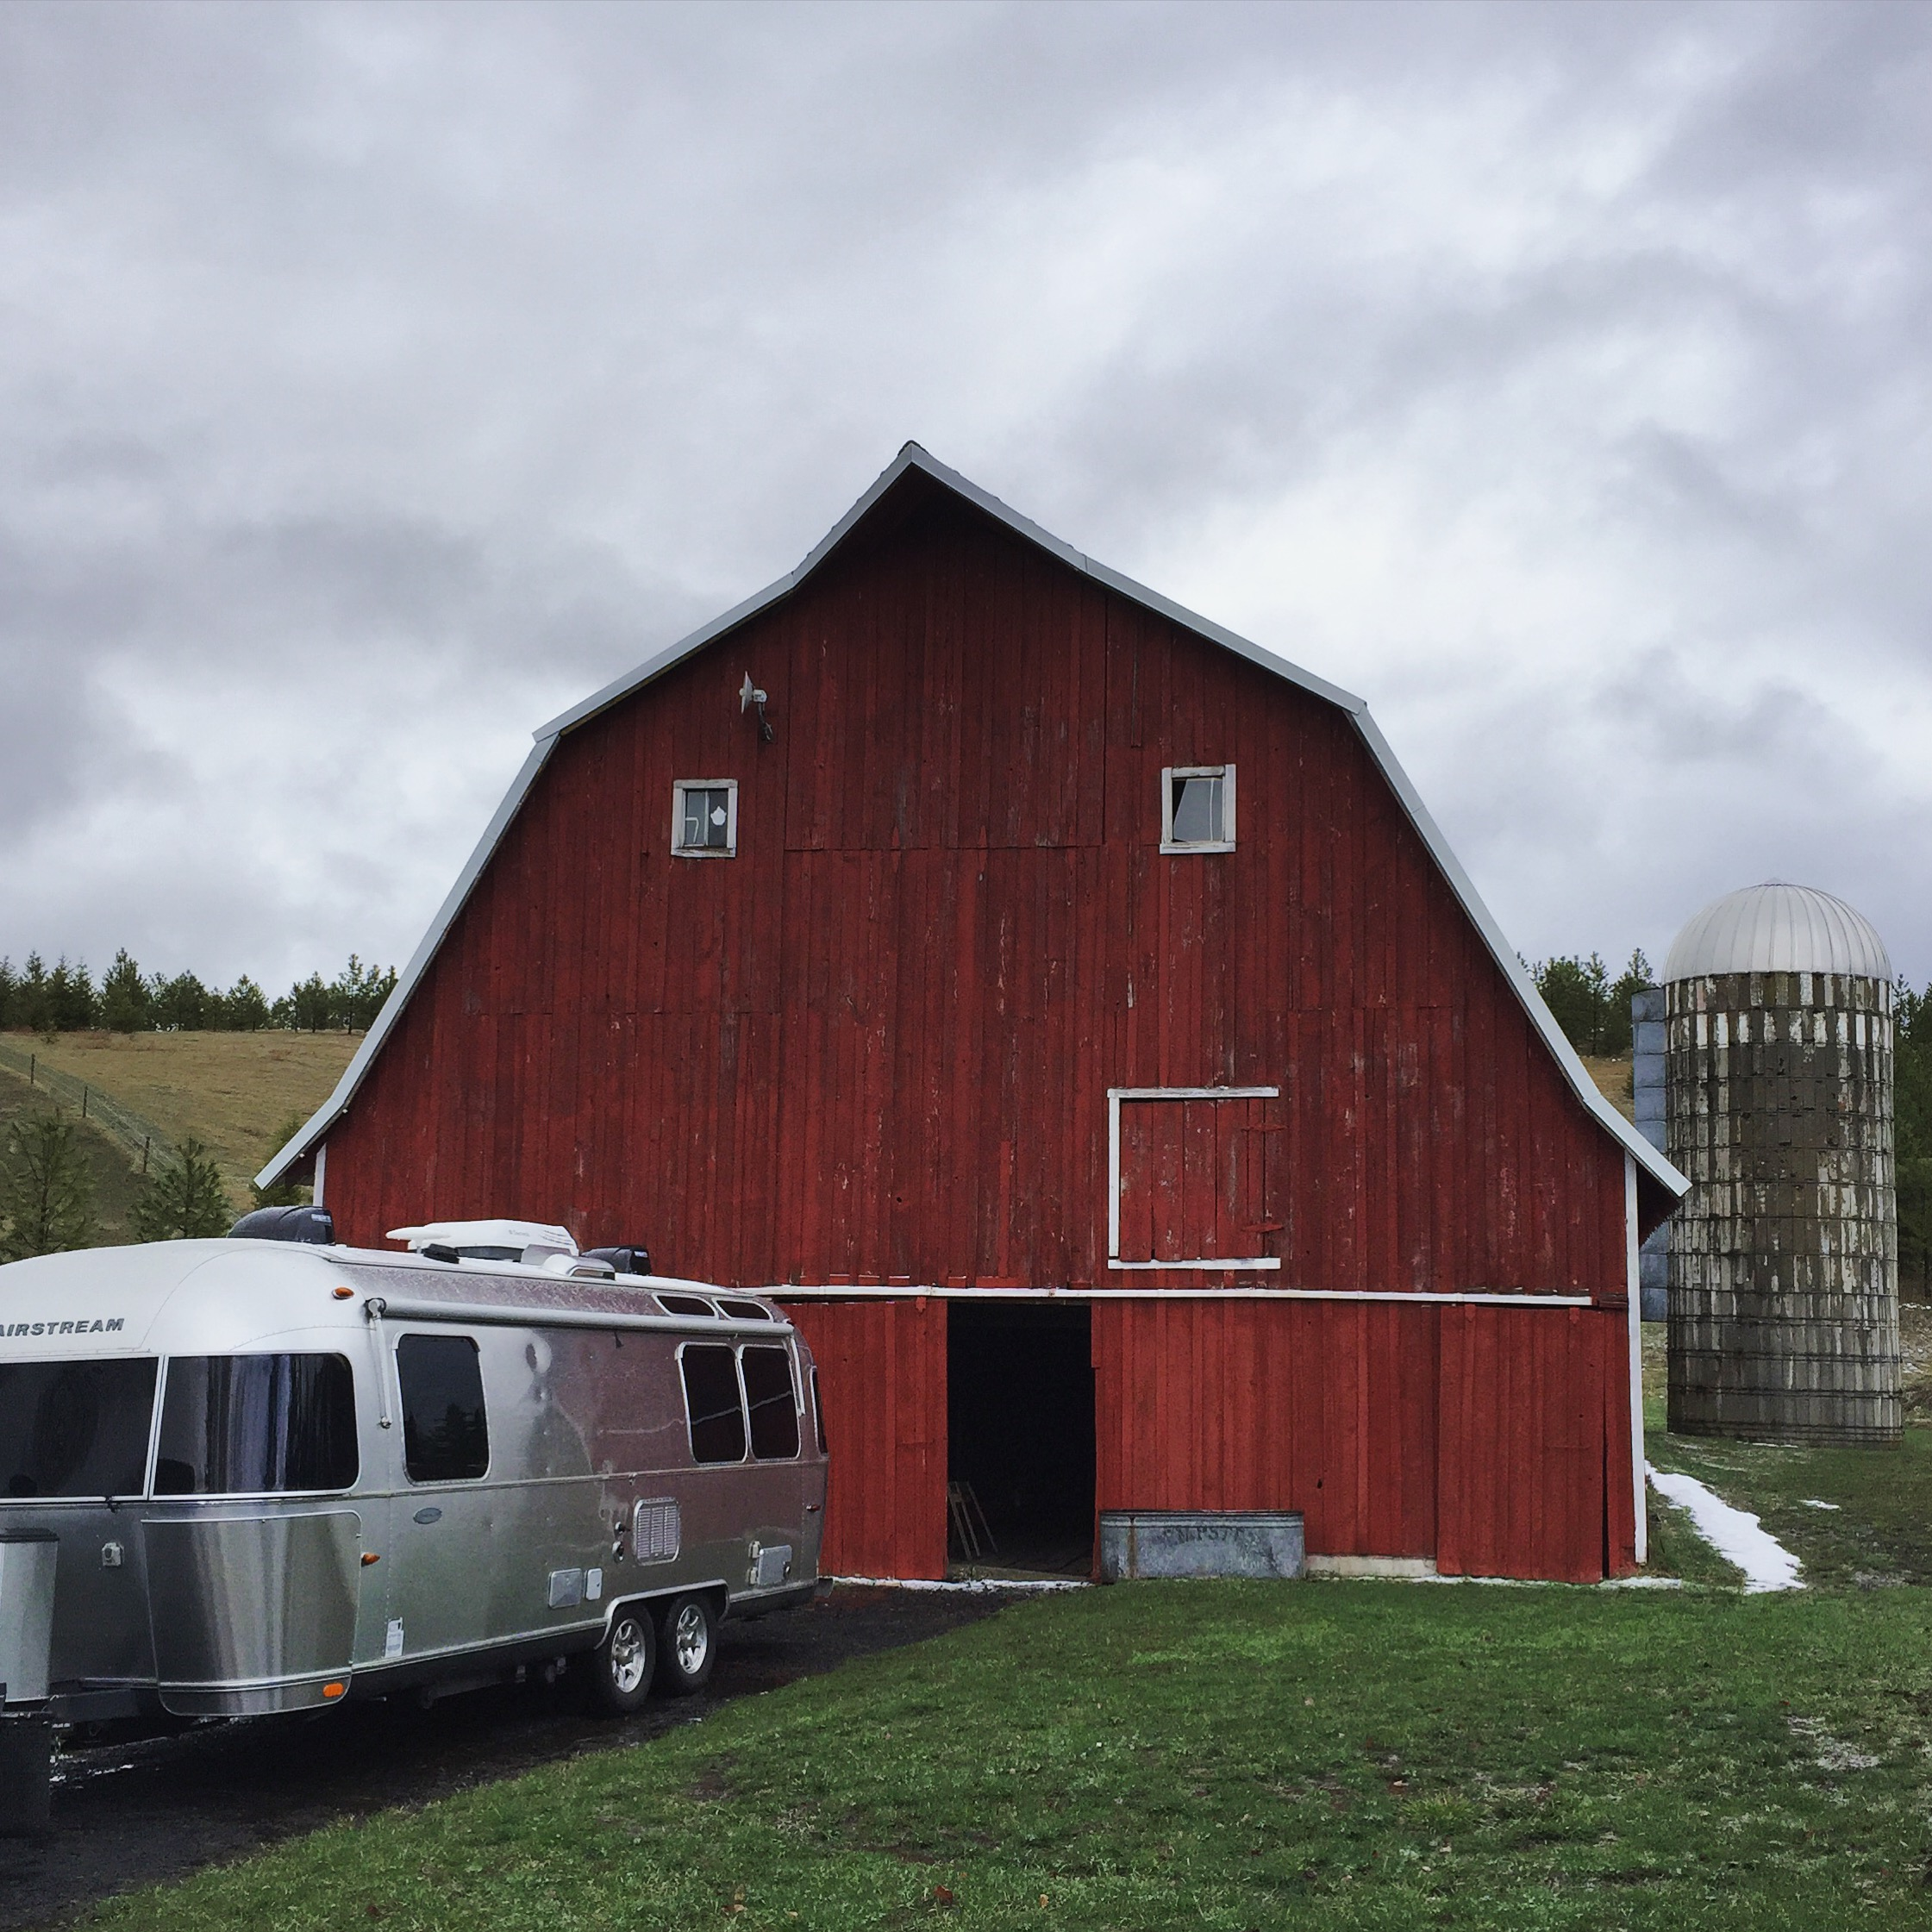 Seriously swoon-worthy barn outside of Moscow, Idaho (photo taken while dodging the hail storm).